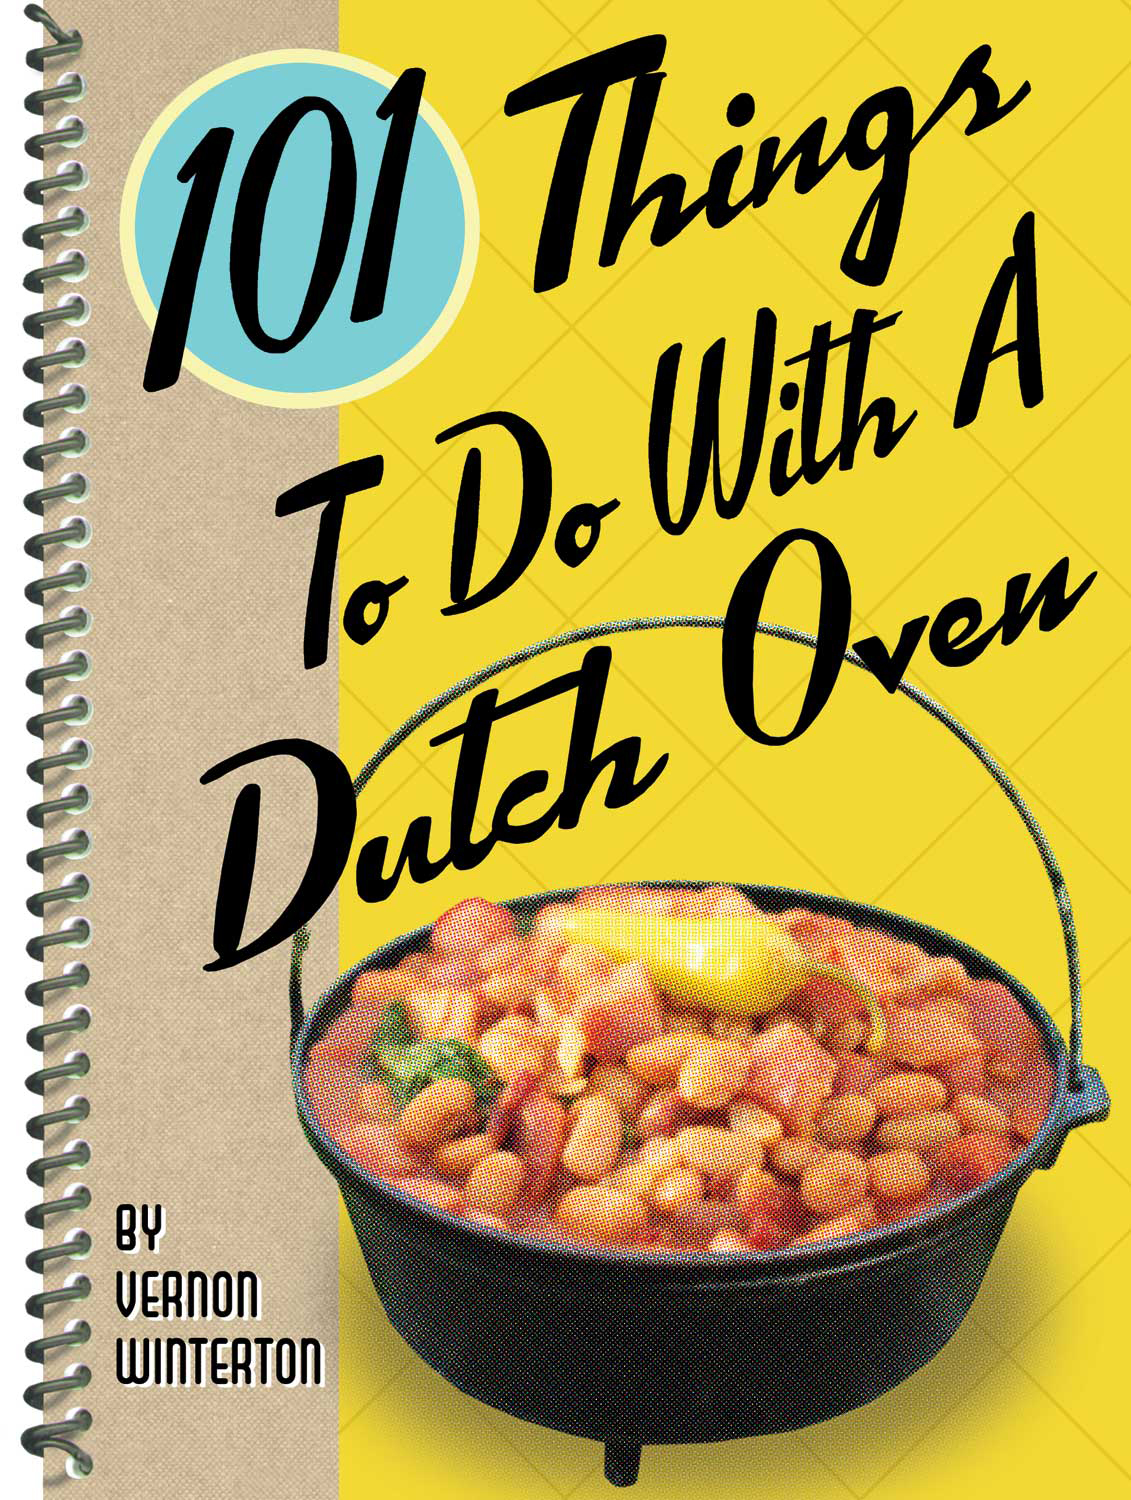 101 Things to Do with a Dutch Oven By: Vernon Winterton